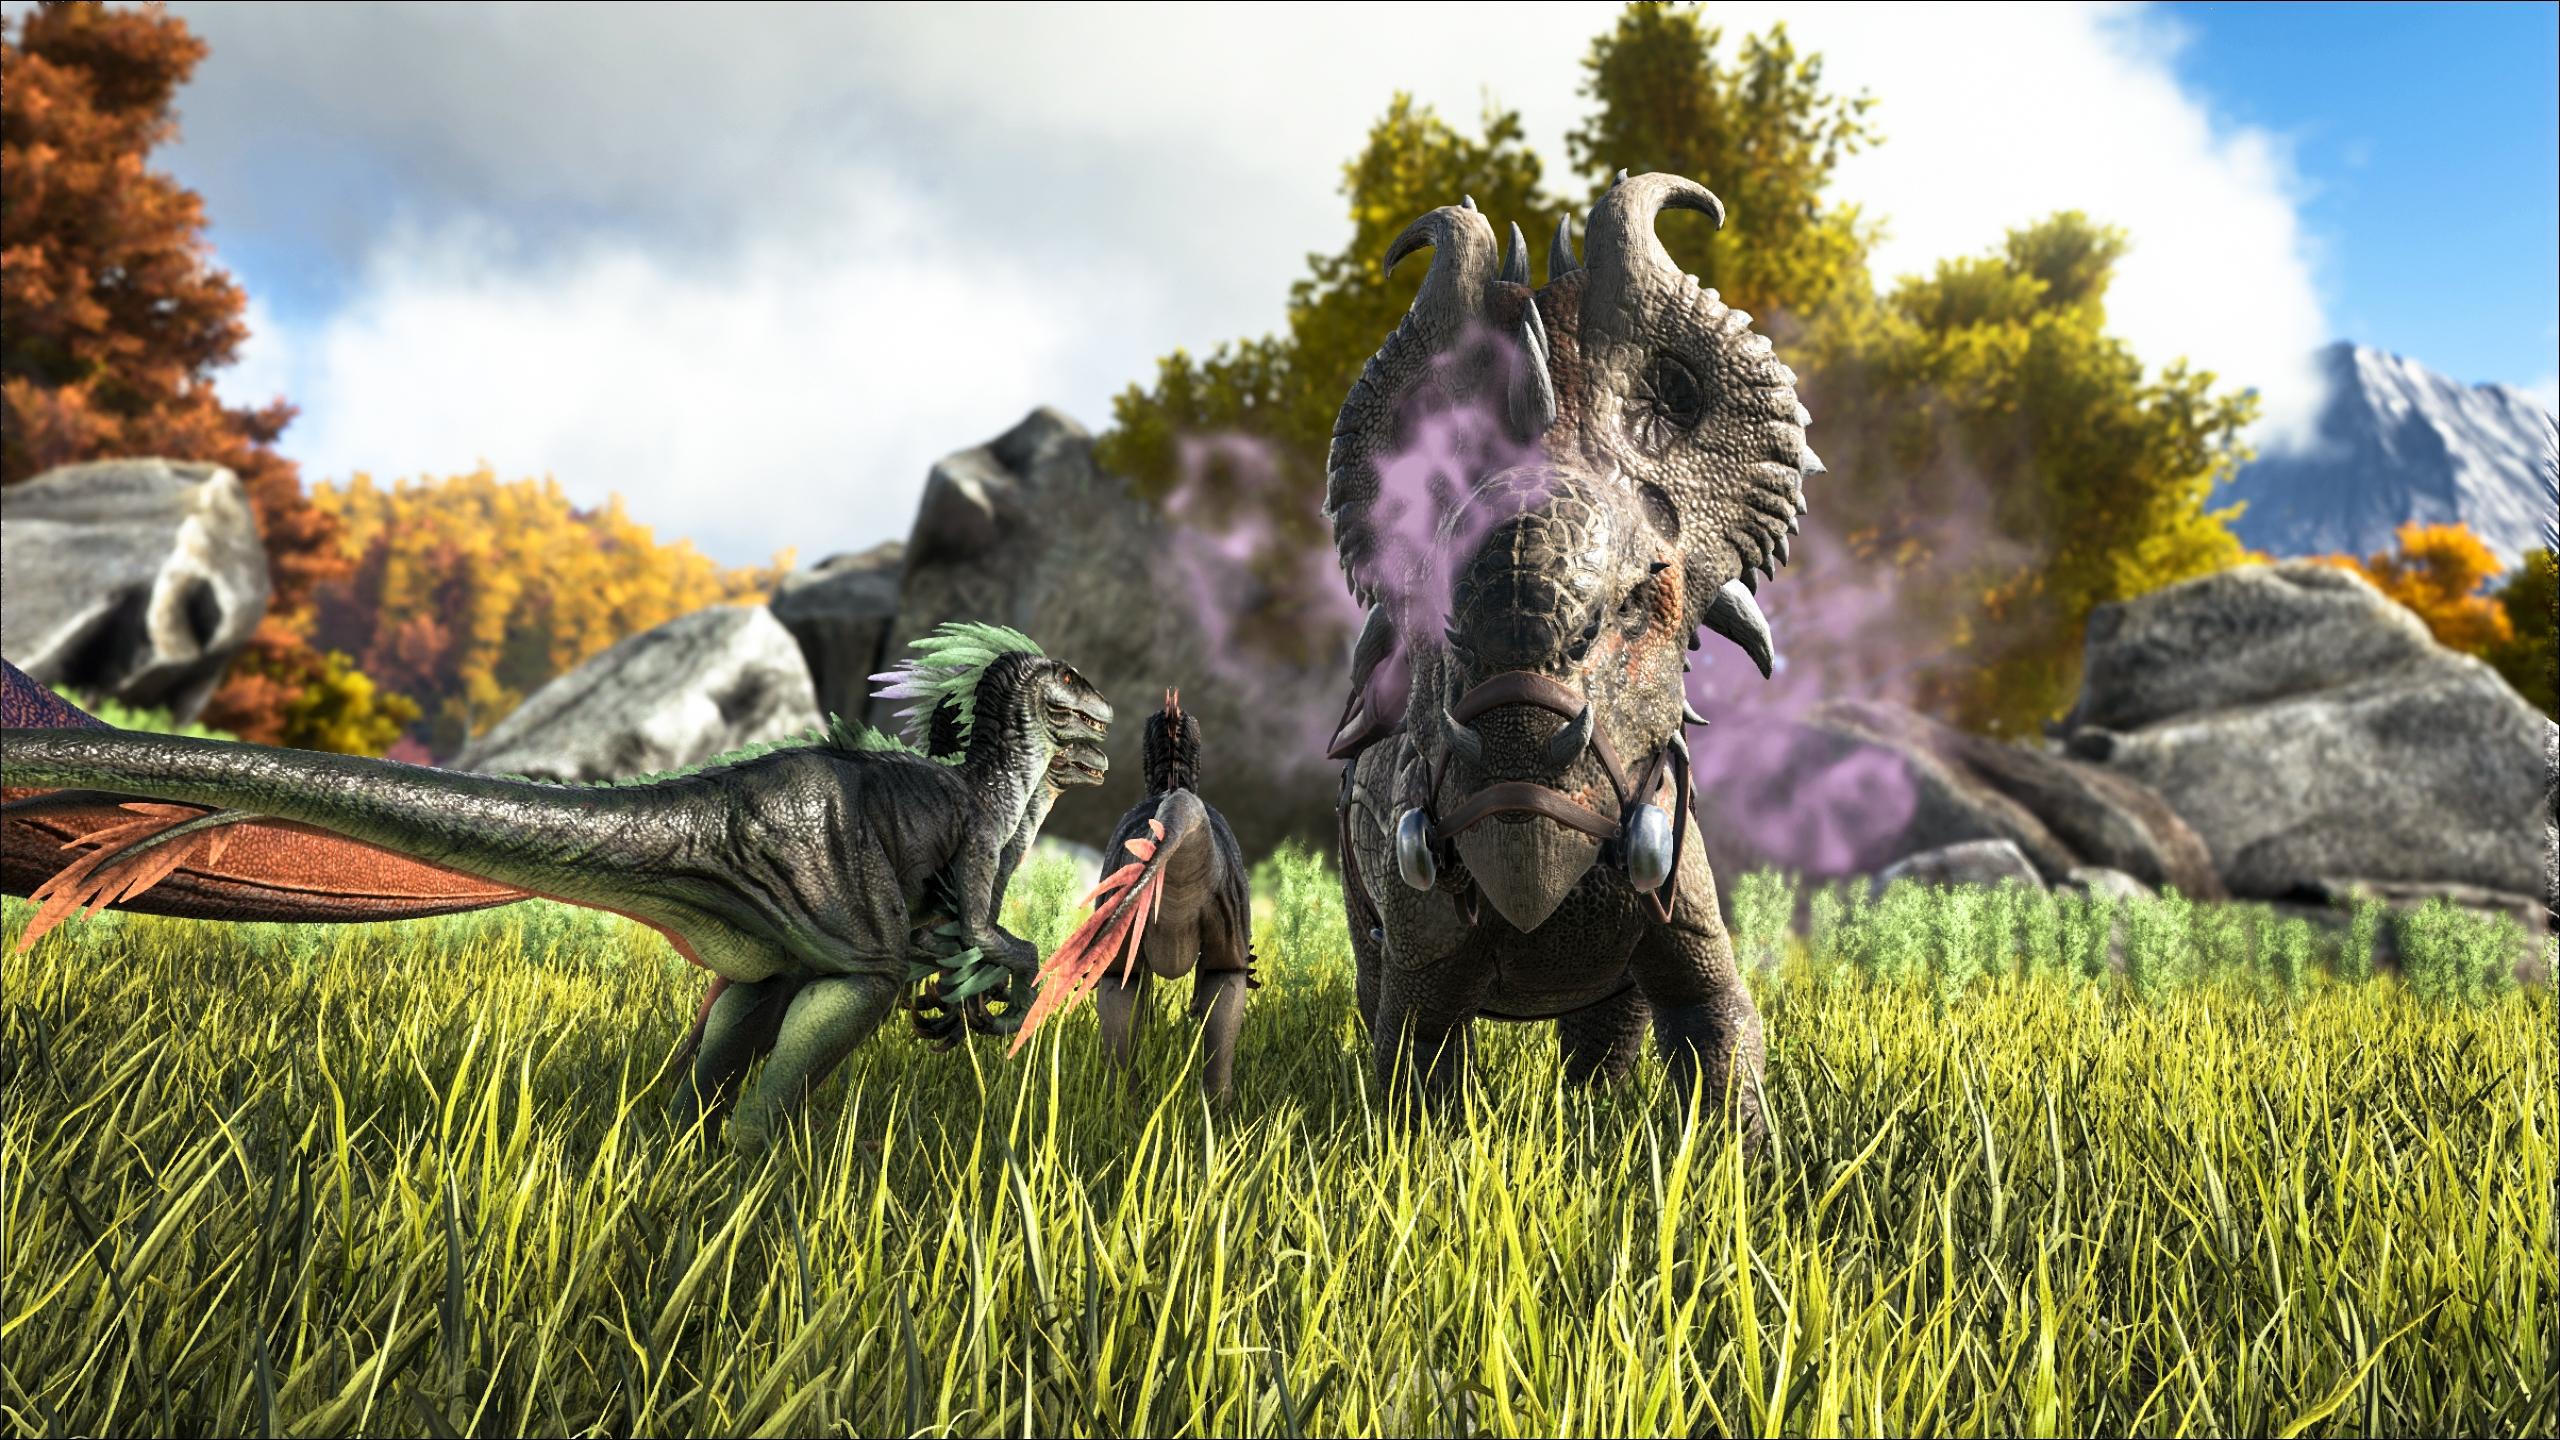 ARK: Survival Evolved heads to Switch this autumn